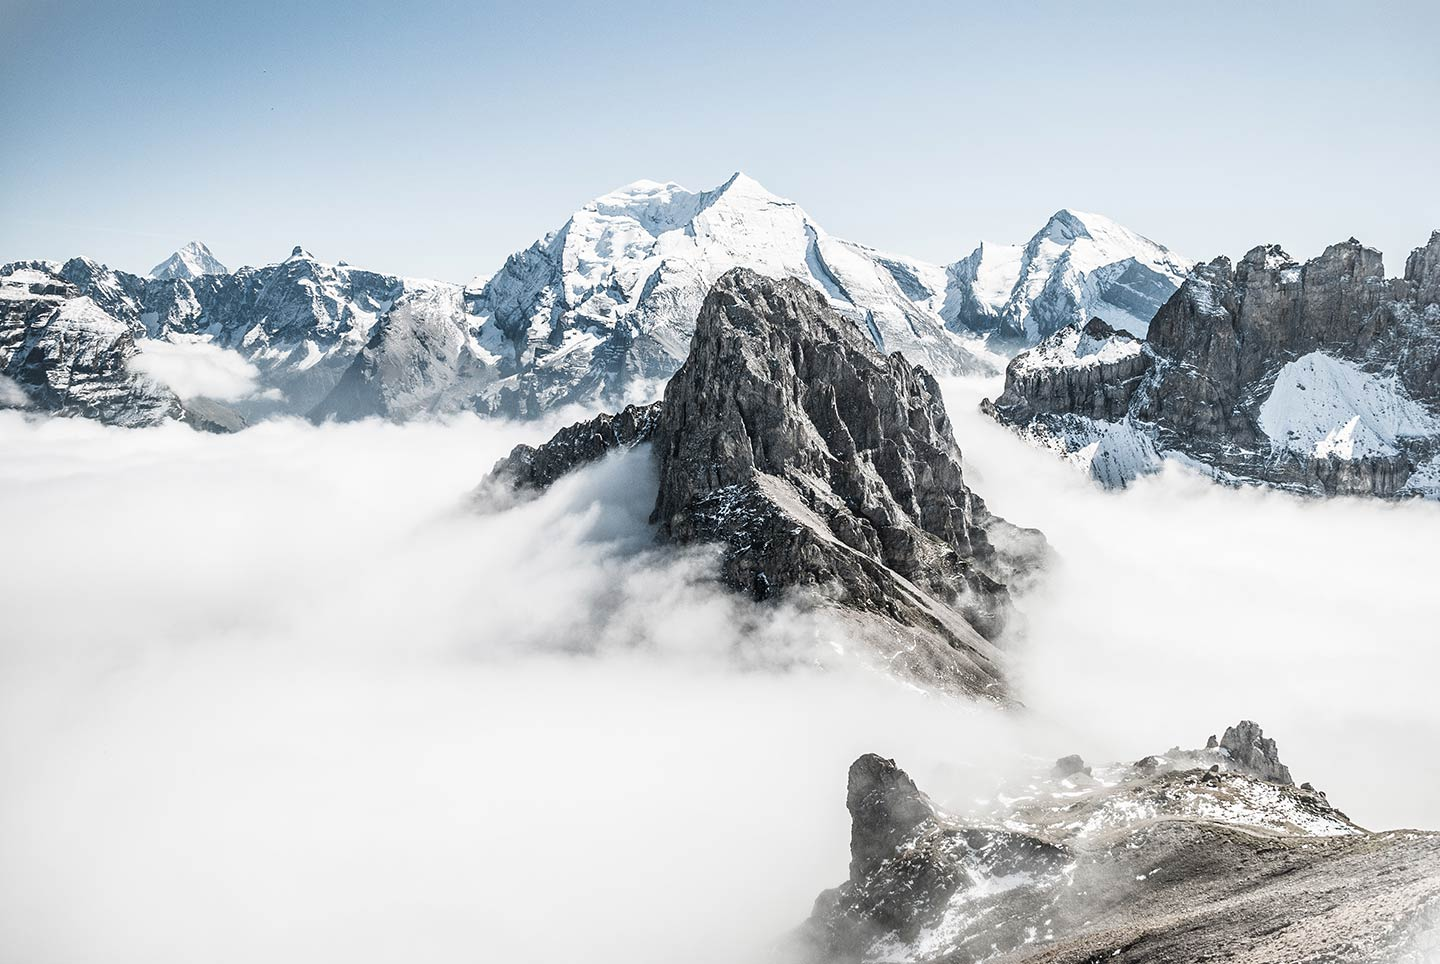 A mountain range that extends above the clouds. A perfect example of a landscape photographer capturing a photo using the correct settings.